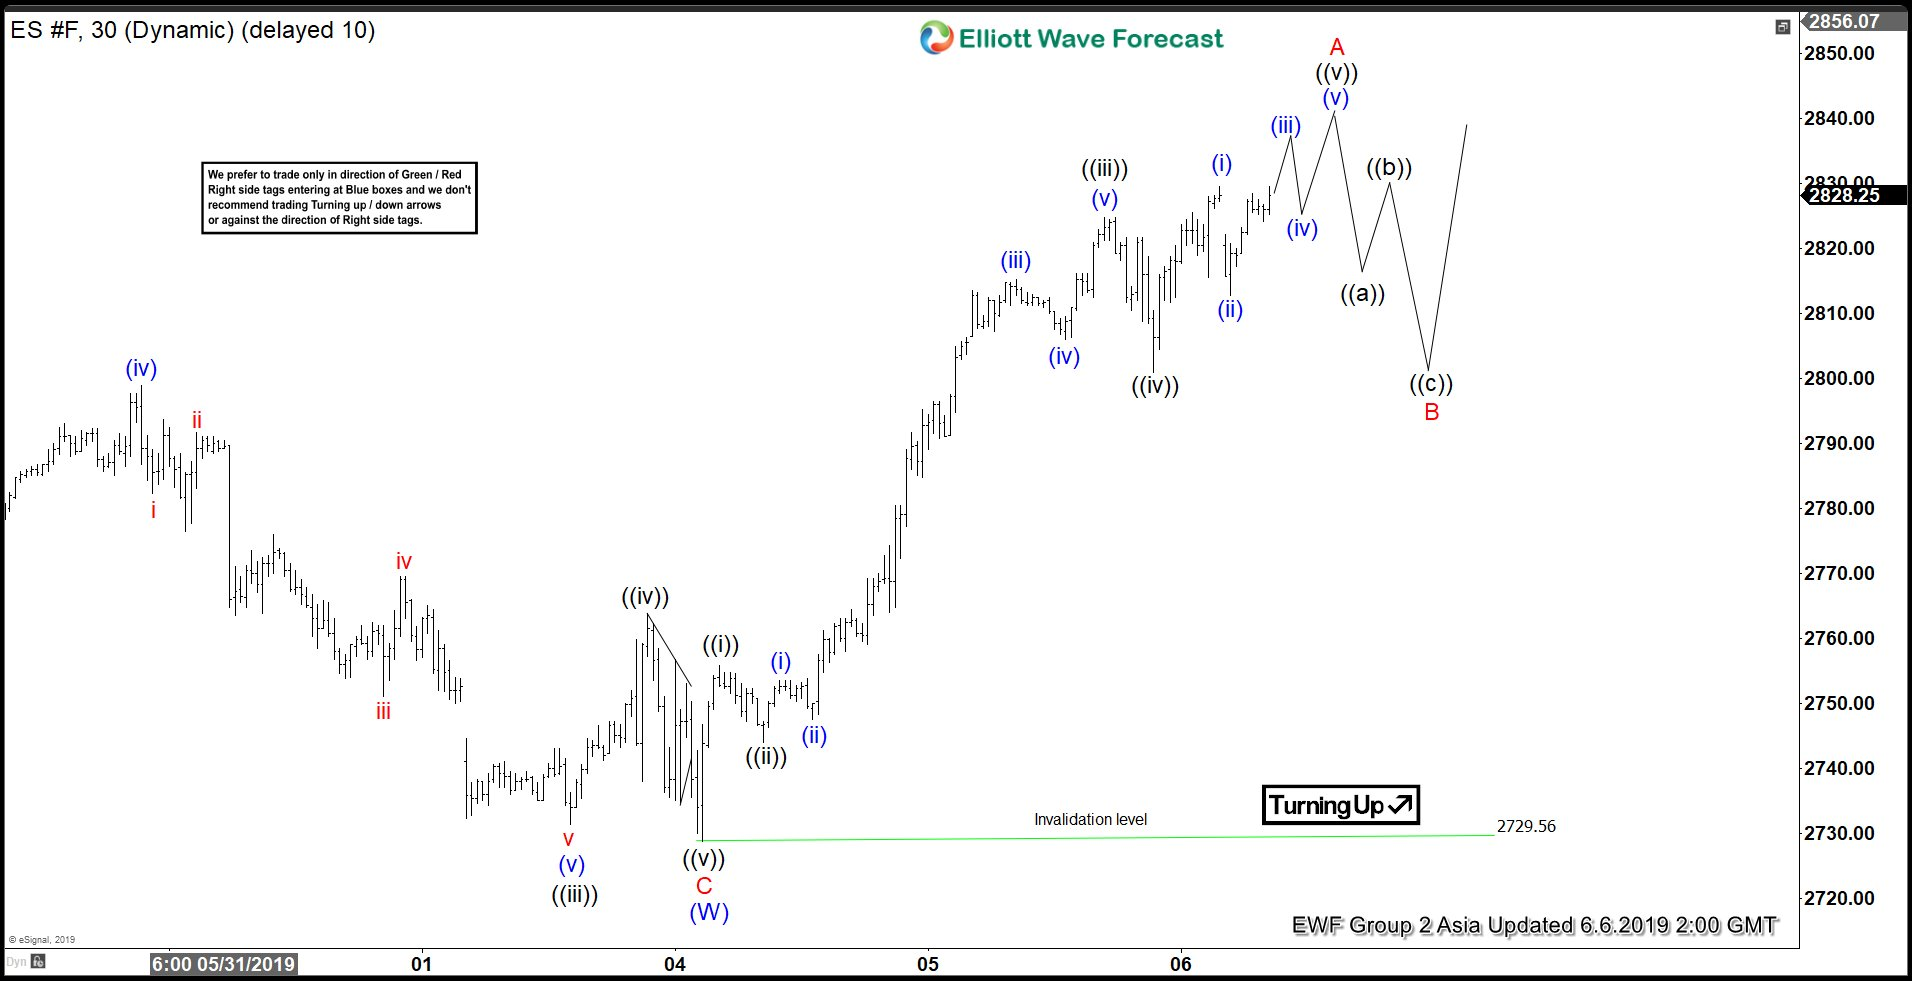 Elliott Wave View: 5 Waves Rally in S&P 500 Futures (ES_F) Suggests More Upside